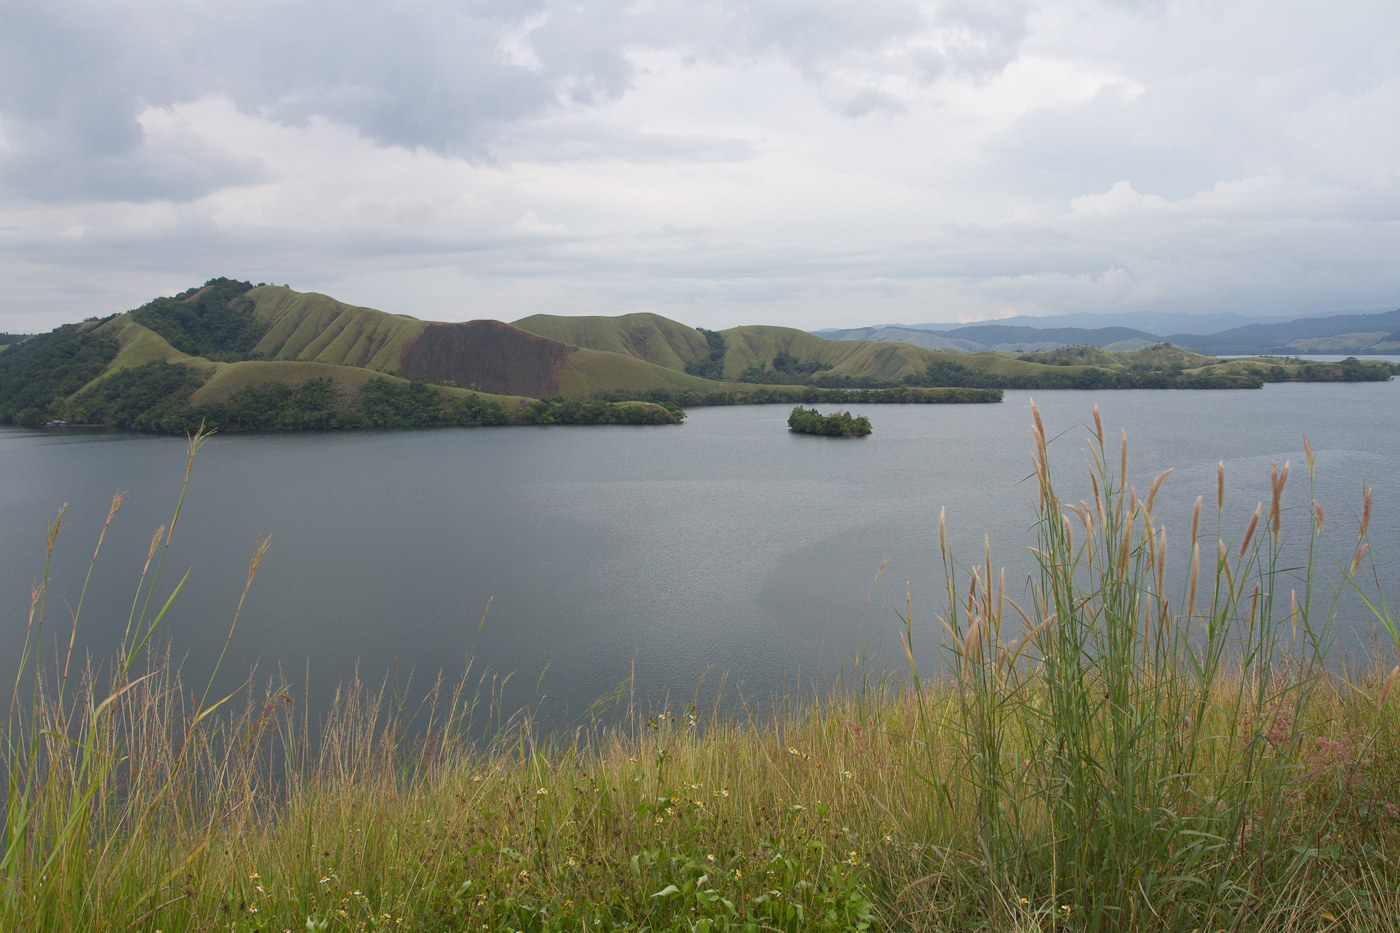 View over the Danau Sentani Lake on the way to Nimbokrang.